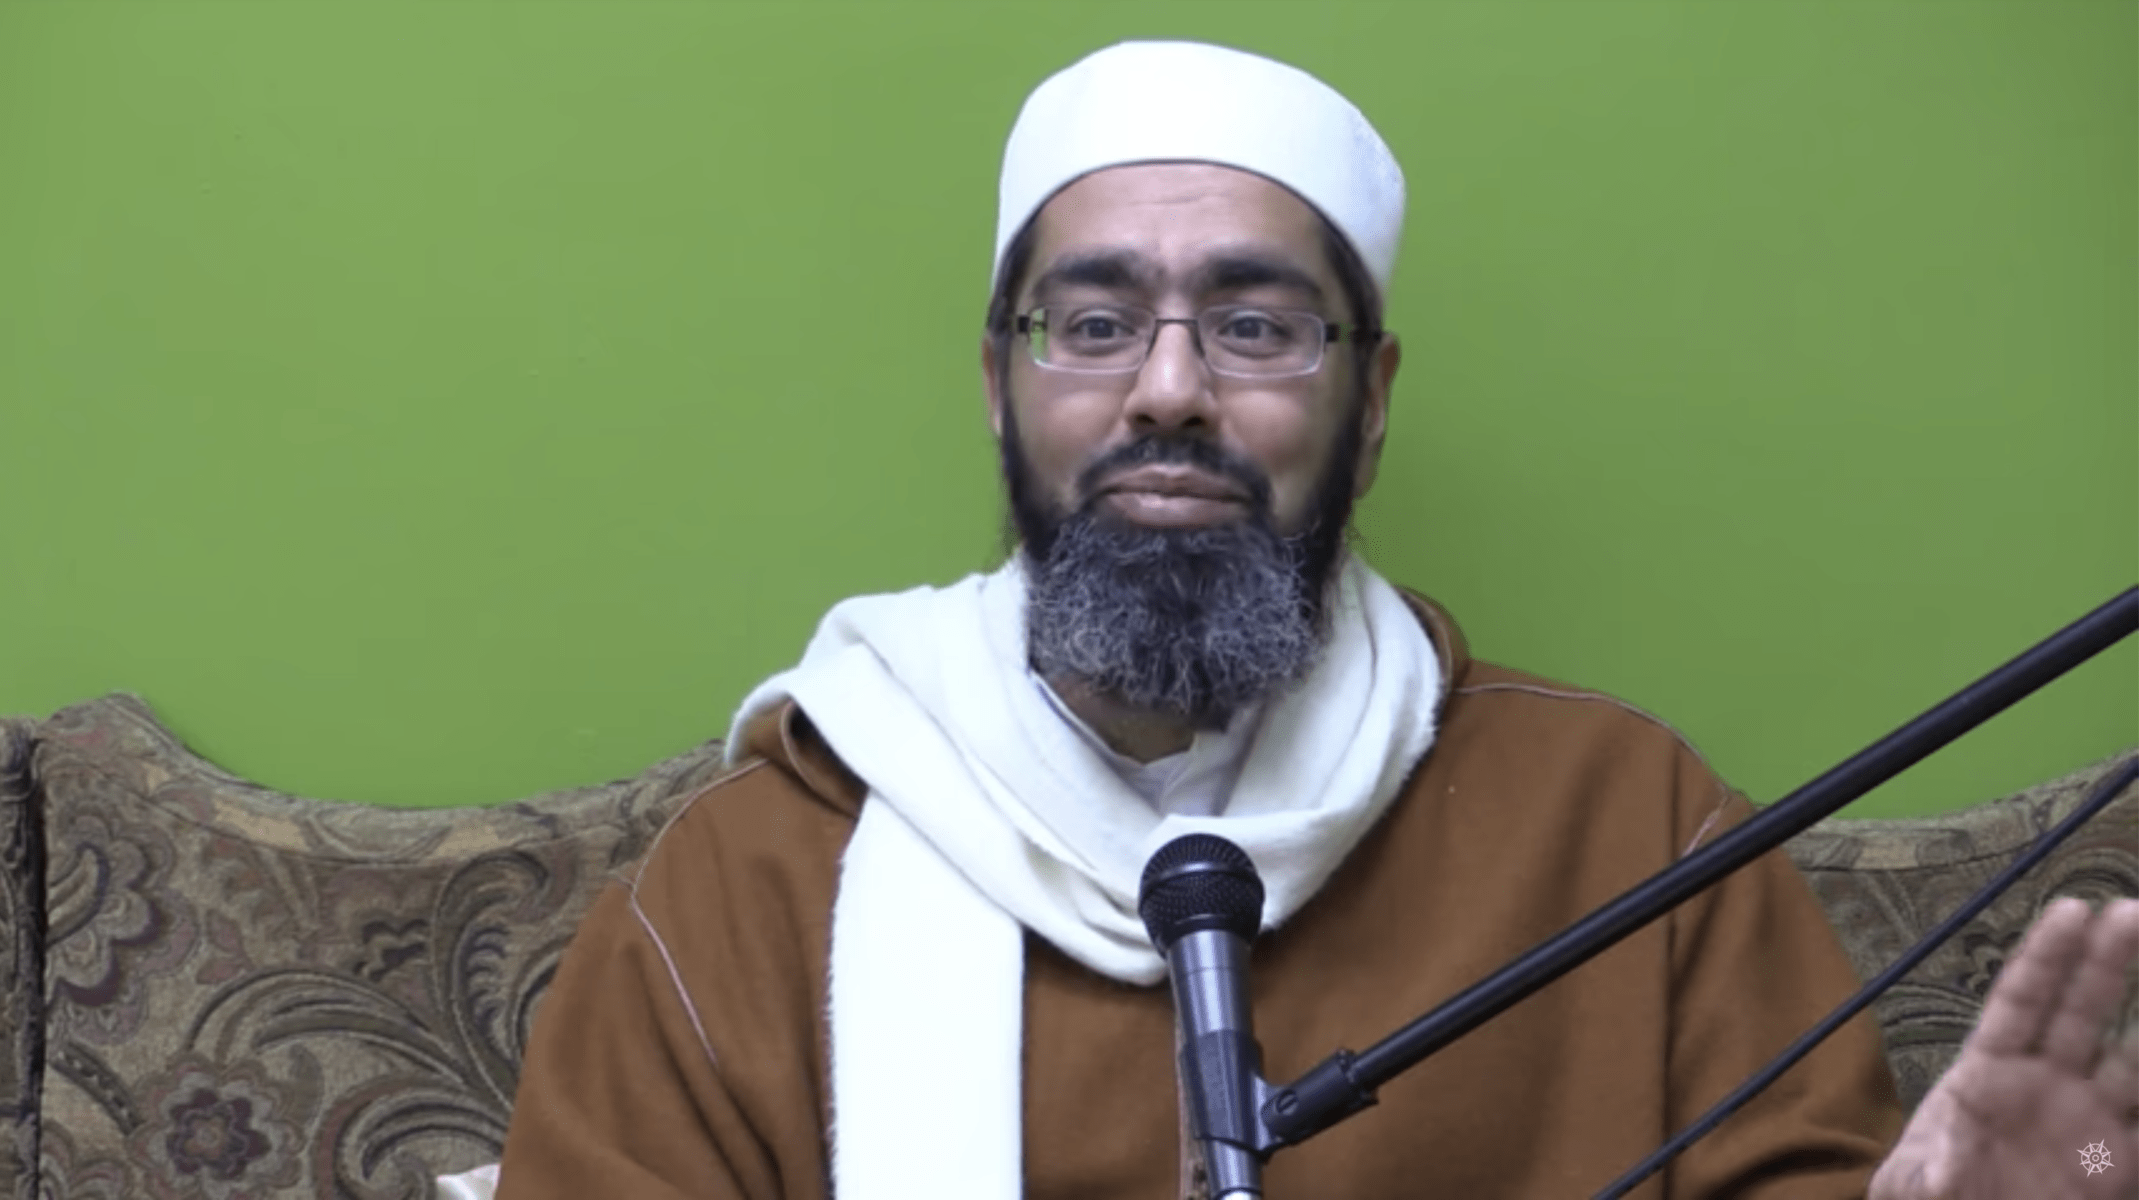 Faraz Rabbani – Why do we send blessings (salawat) on the Prophet Muhammad ﷺ